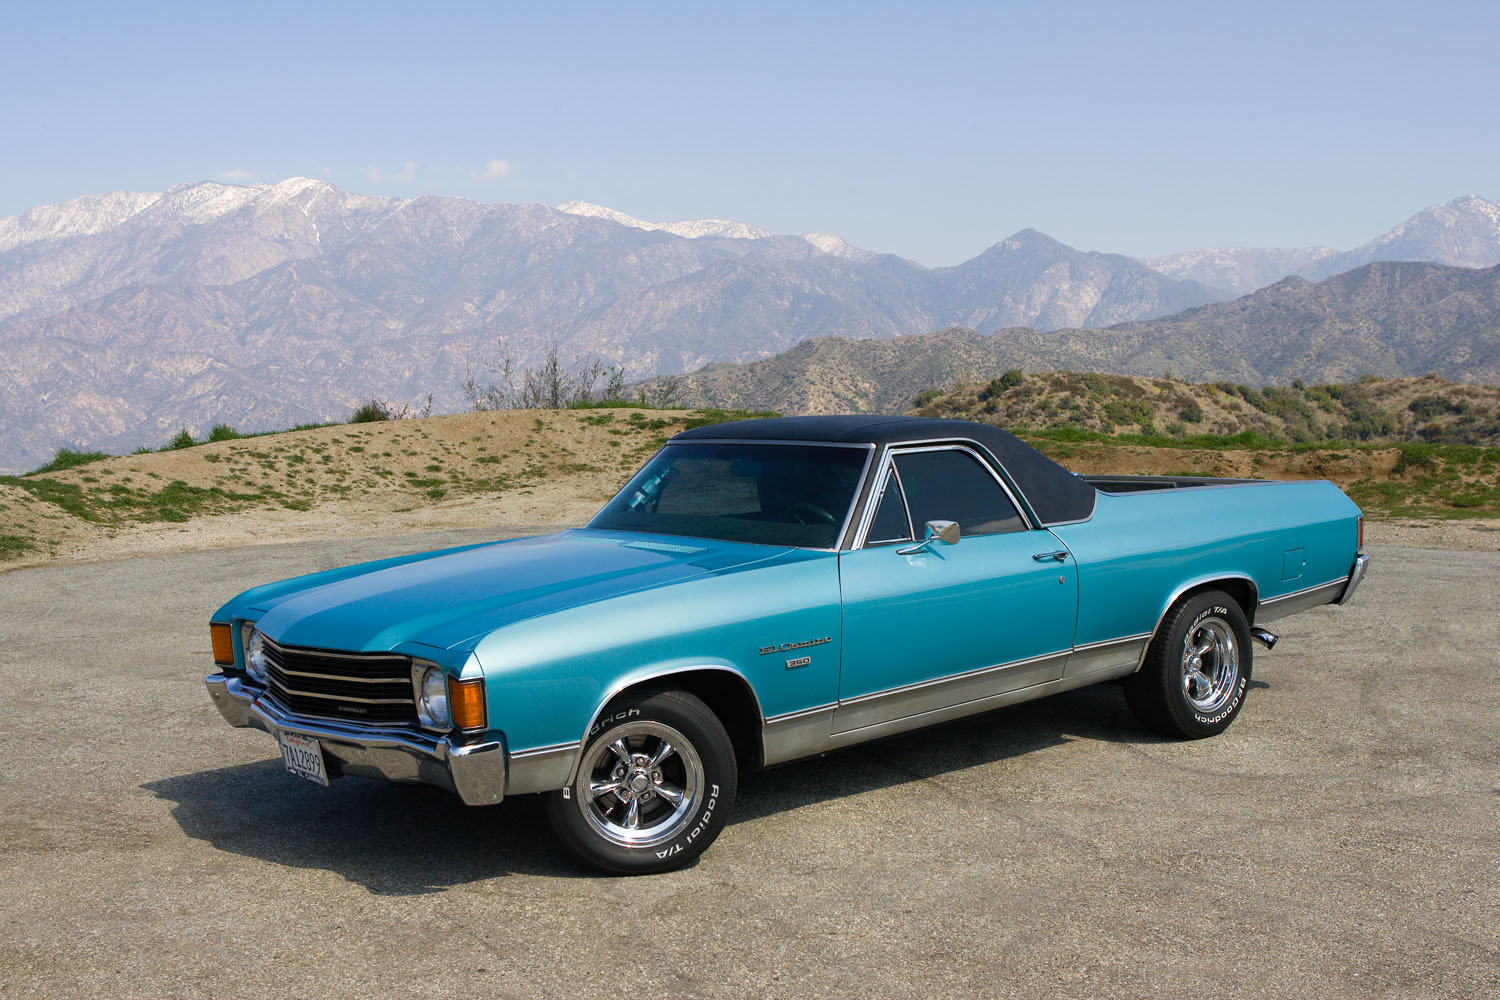 camino : 1972 Chevrolet El Camino Pictures, Mods, Upgrades, Wallpaper ...